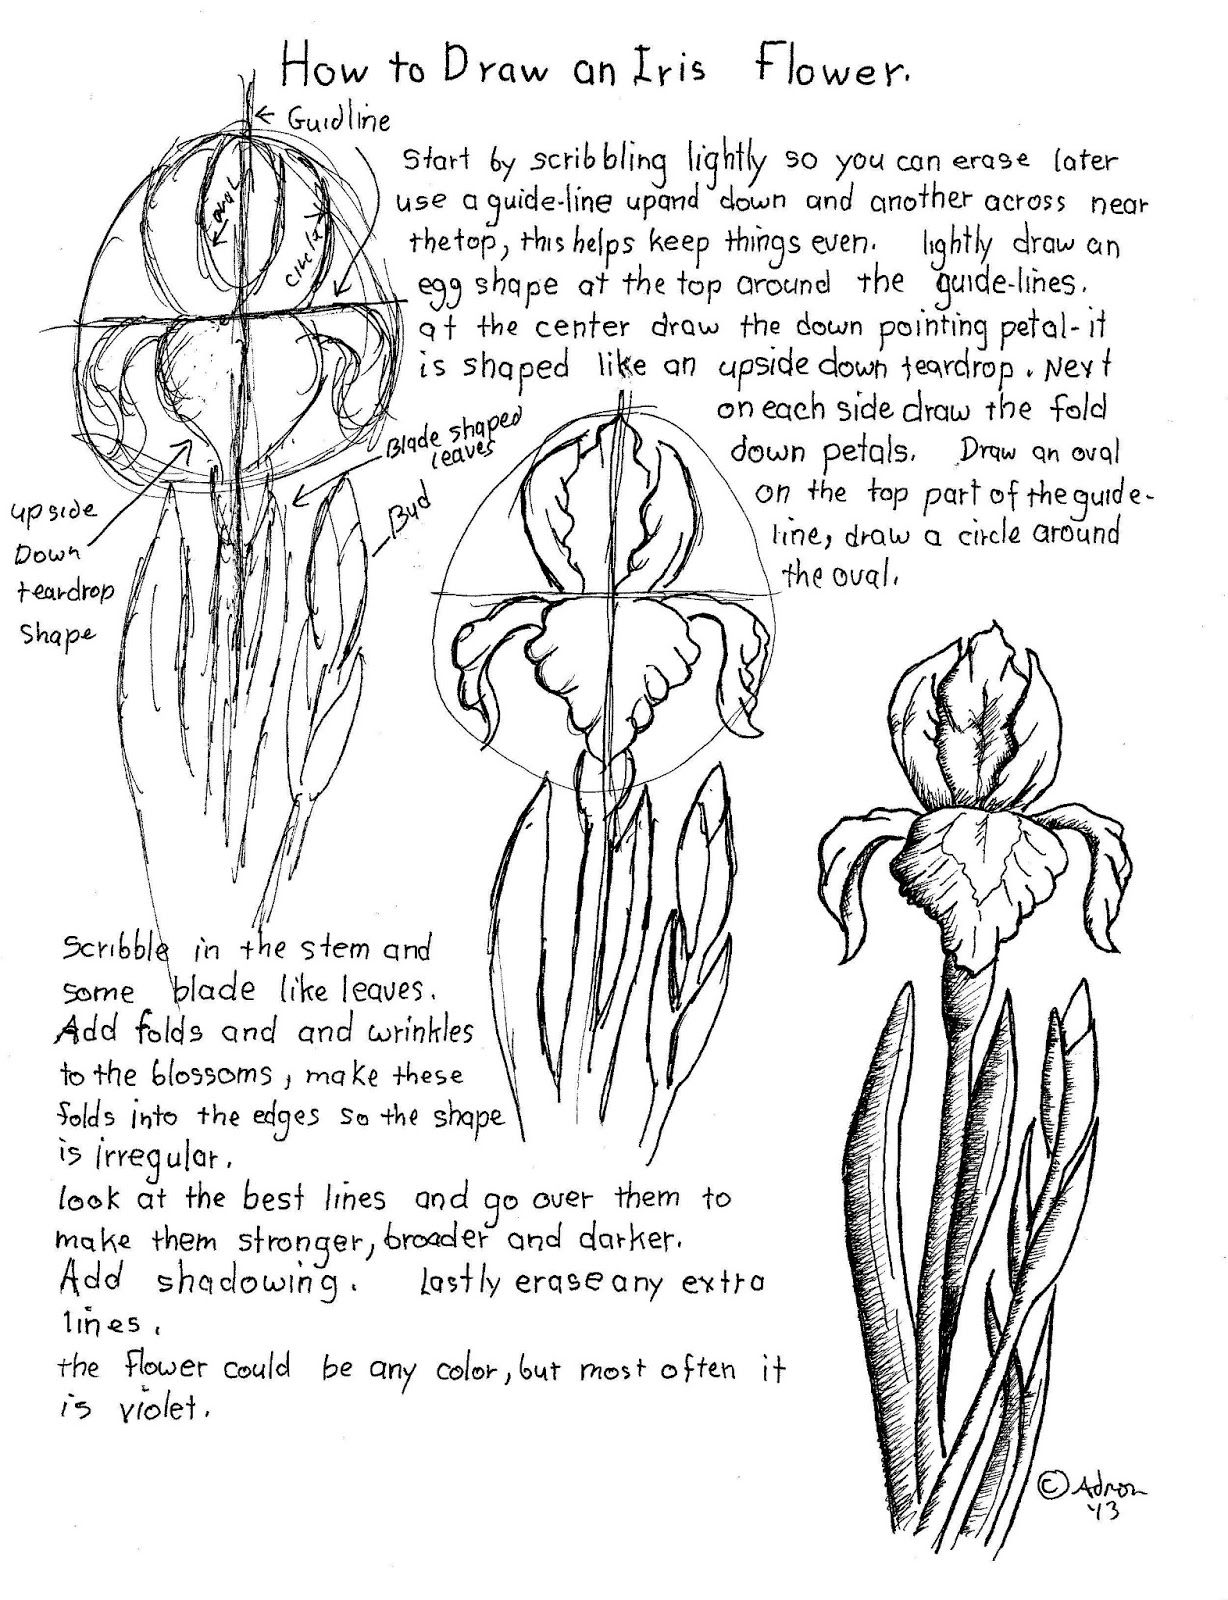 How To Draw An Iris Flower Worksheet With Images